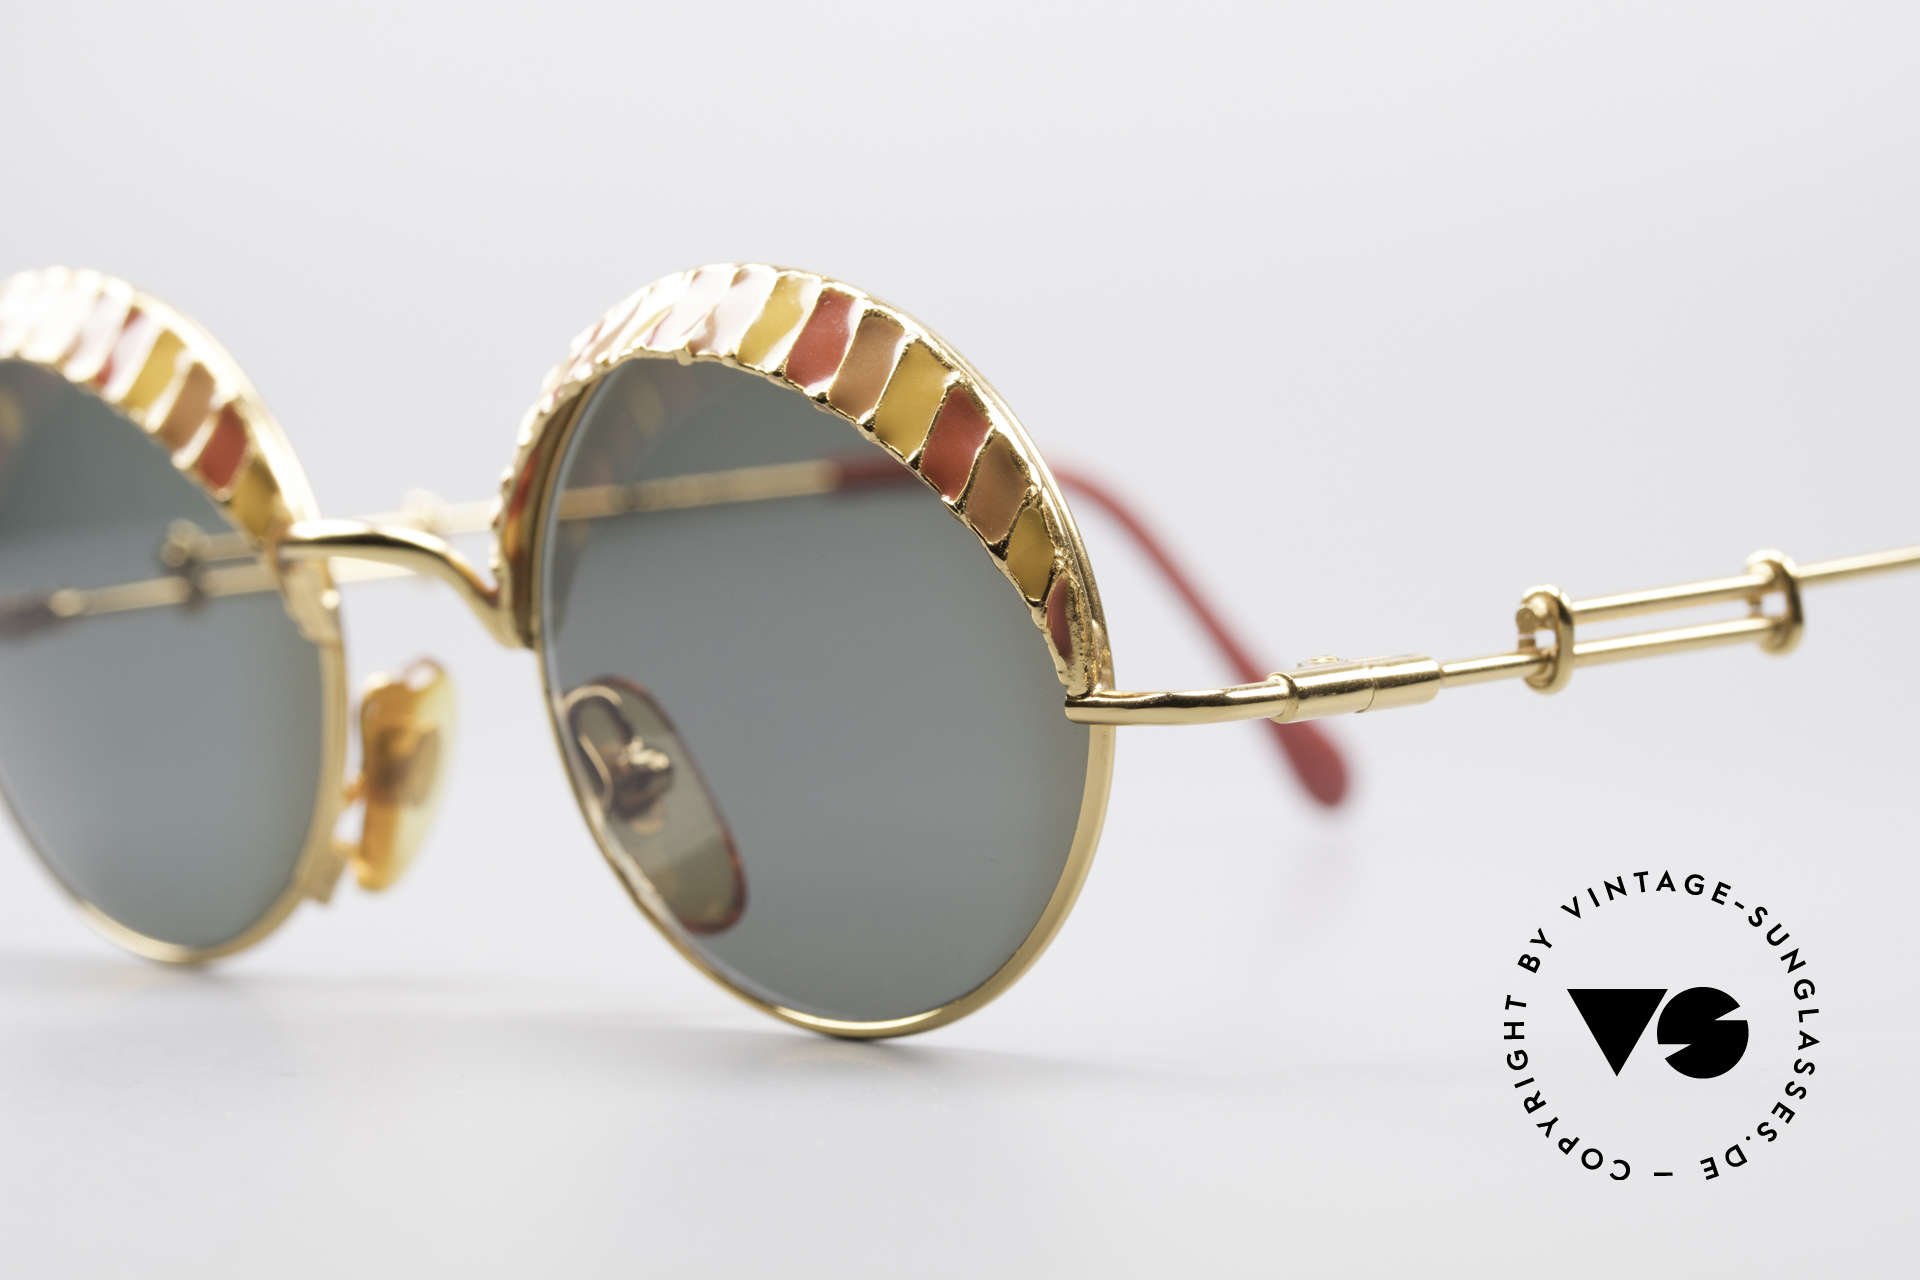 Casanova Arché 4 Limited Gold Plated Frame, limited edition (134/300) - only 300 models, worldwide, Made for Men and Women